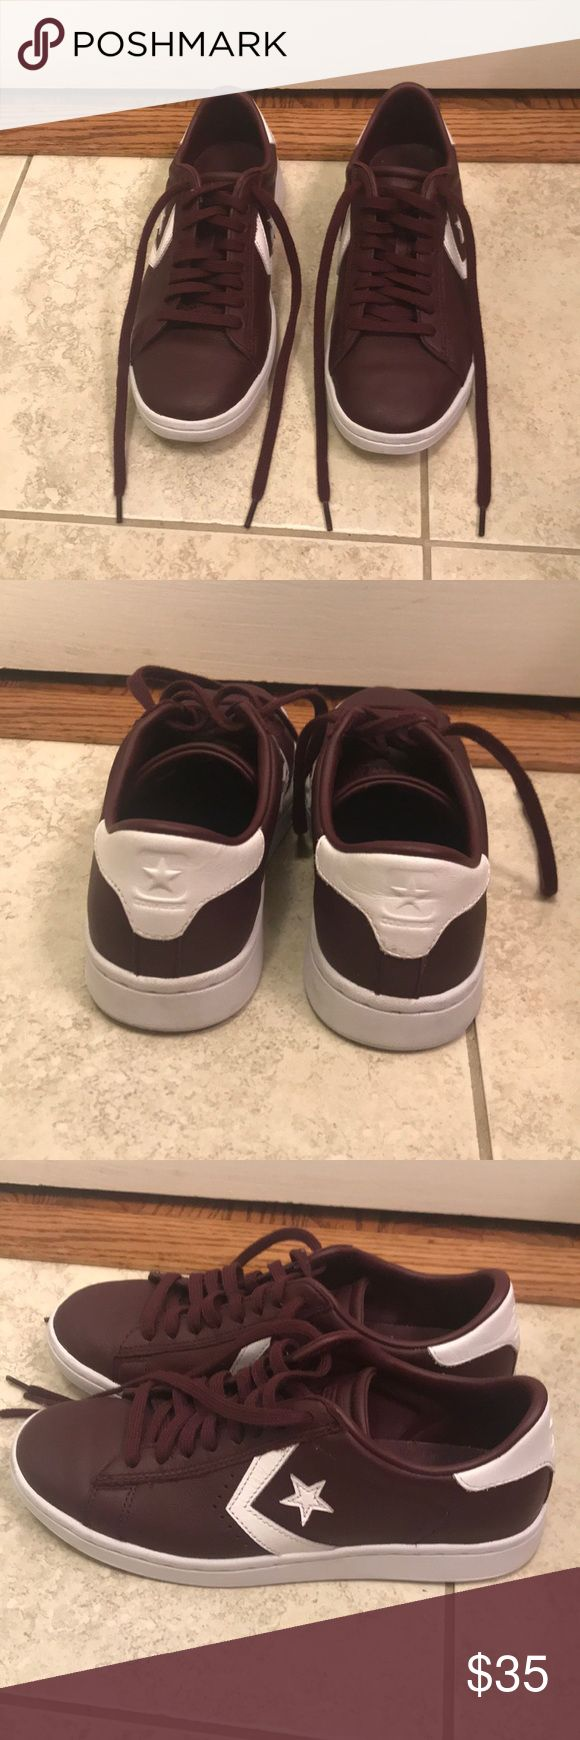 """Converse Pro Leather Low Profile Low Top Size 5.5 Women's low top leather Converse size 5.5 in """"Sangria"""". Worn once, in great condition. Slight scuff on the back of the right heel, see picture. Converse Shoes"""